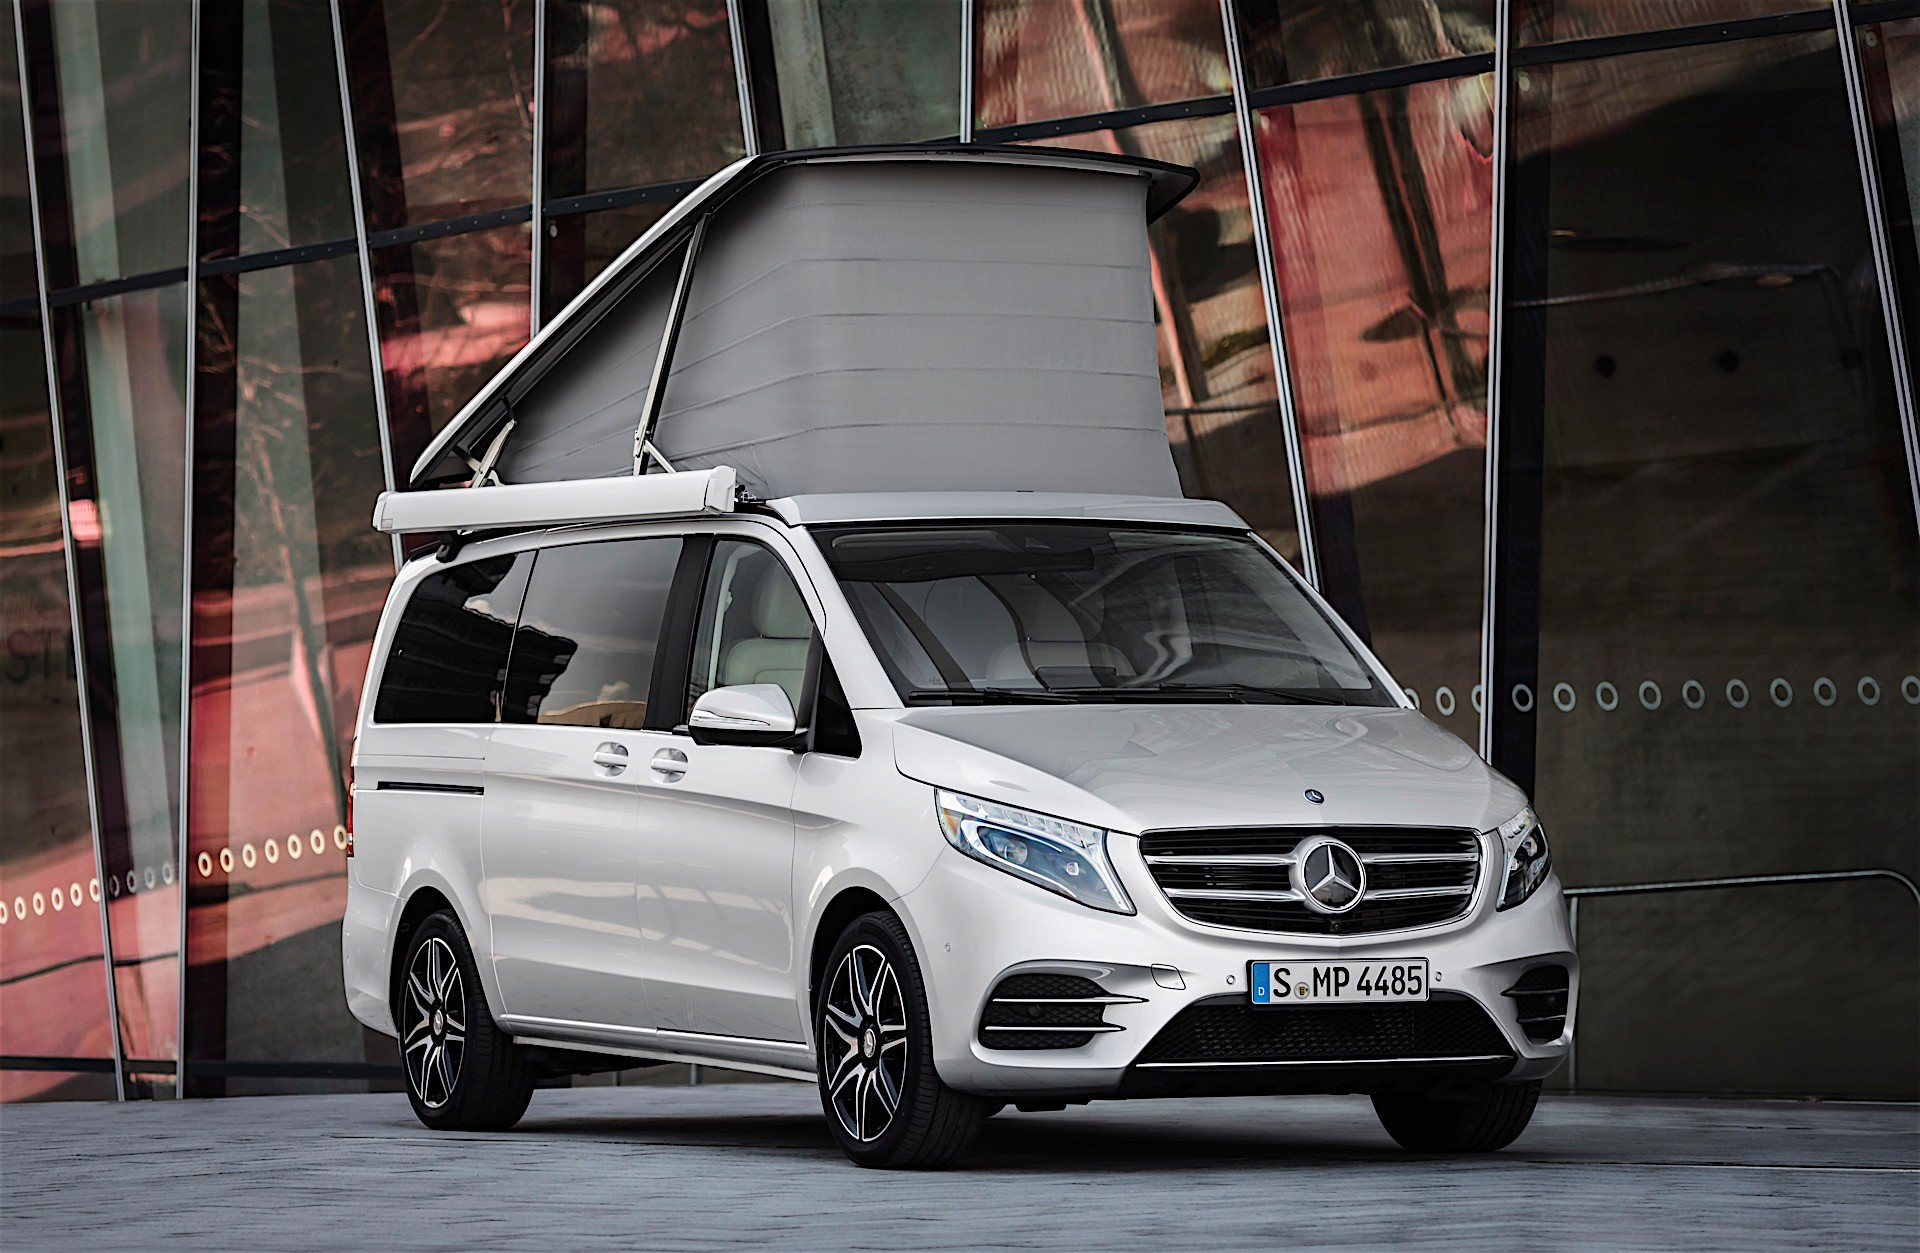 Mercedes benz is the most profitable van manufacturer for Mercedes benz maker